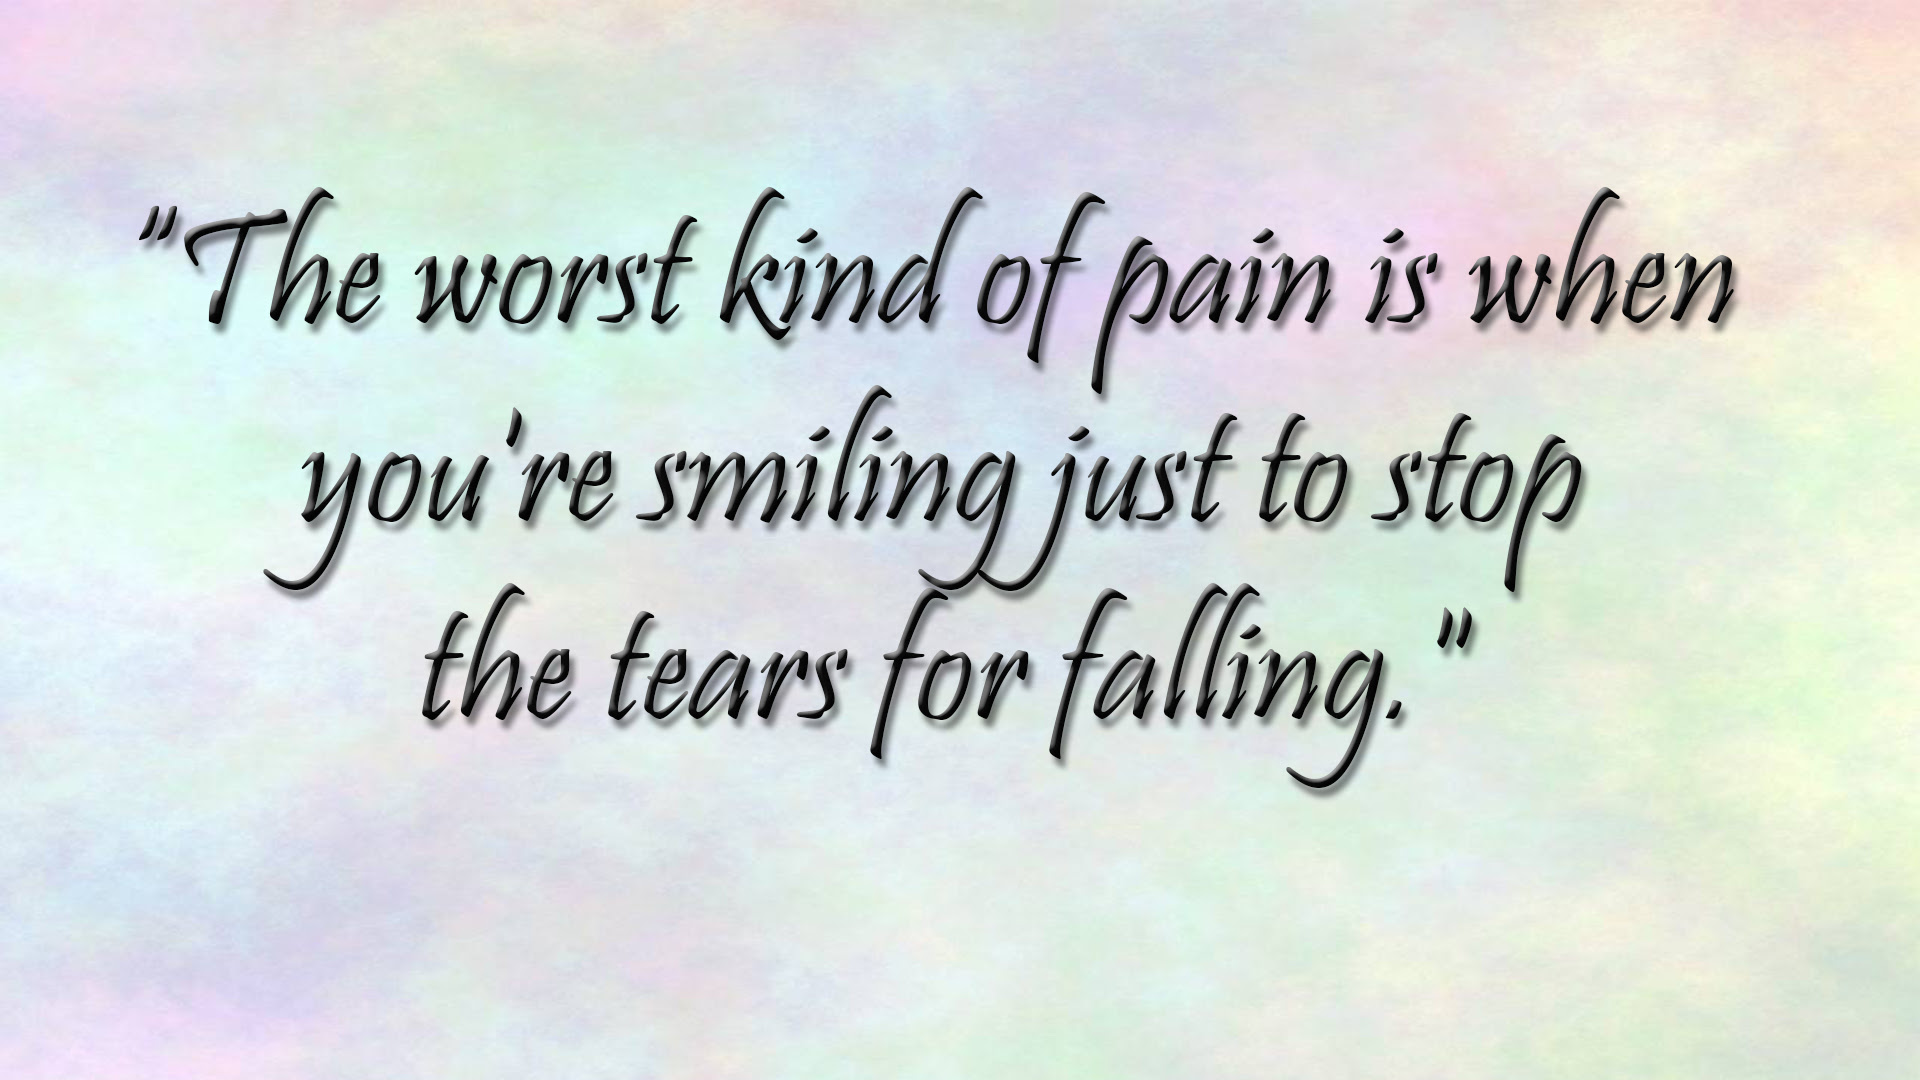 Feeling Sad Quotes Hd Images Quotes About Sadness